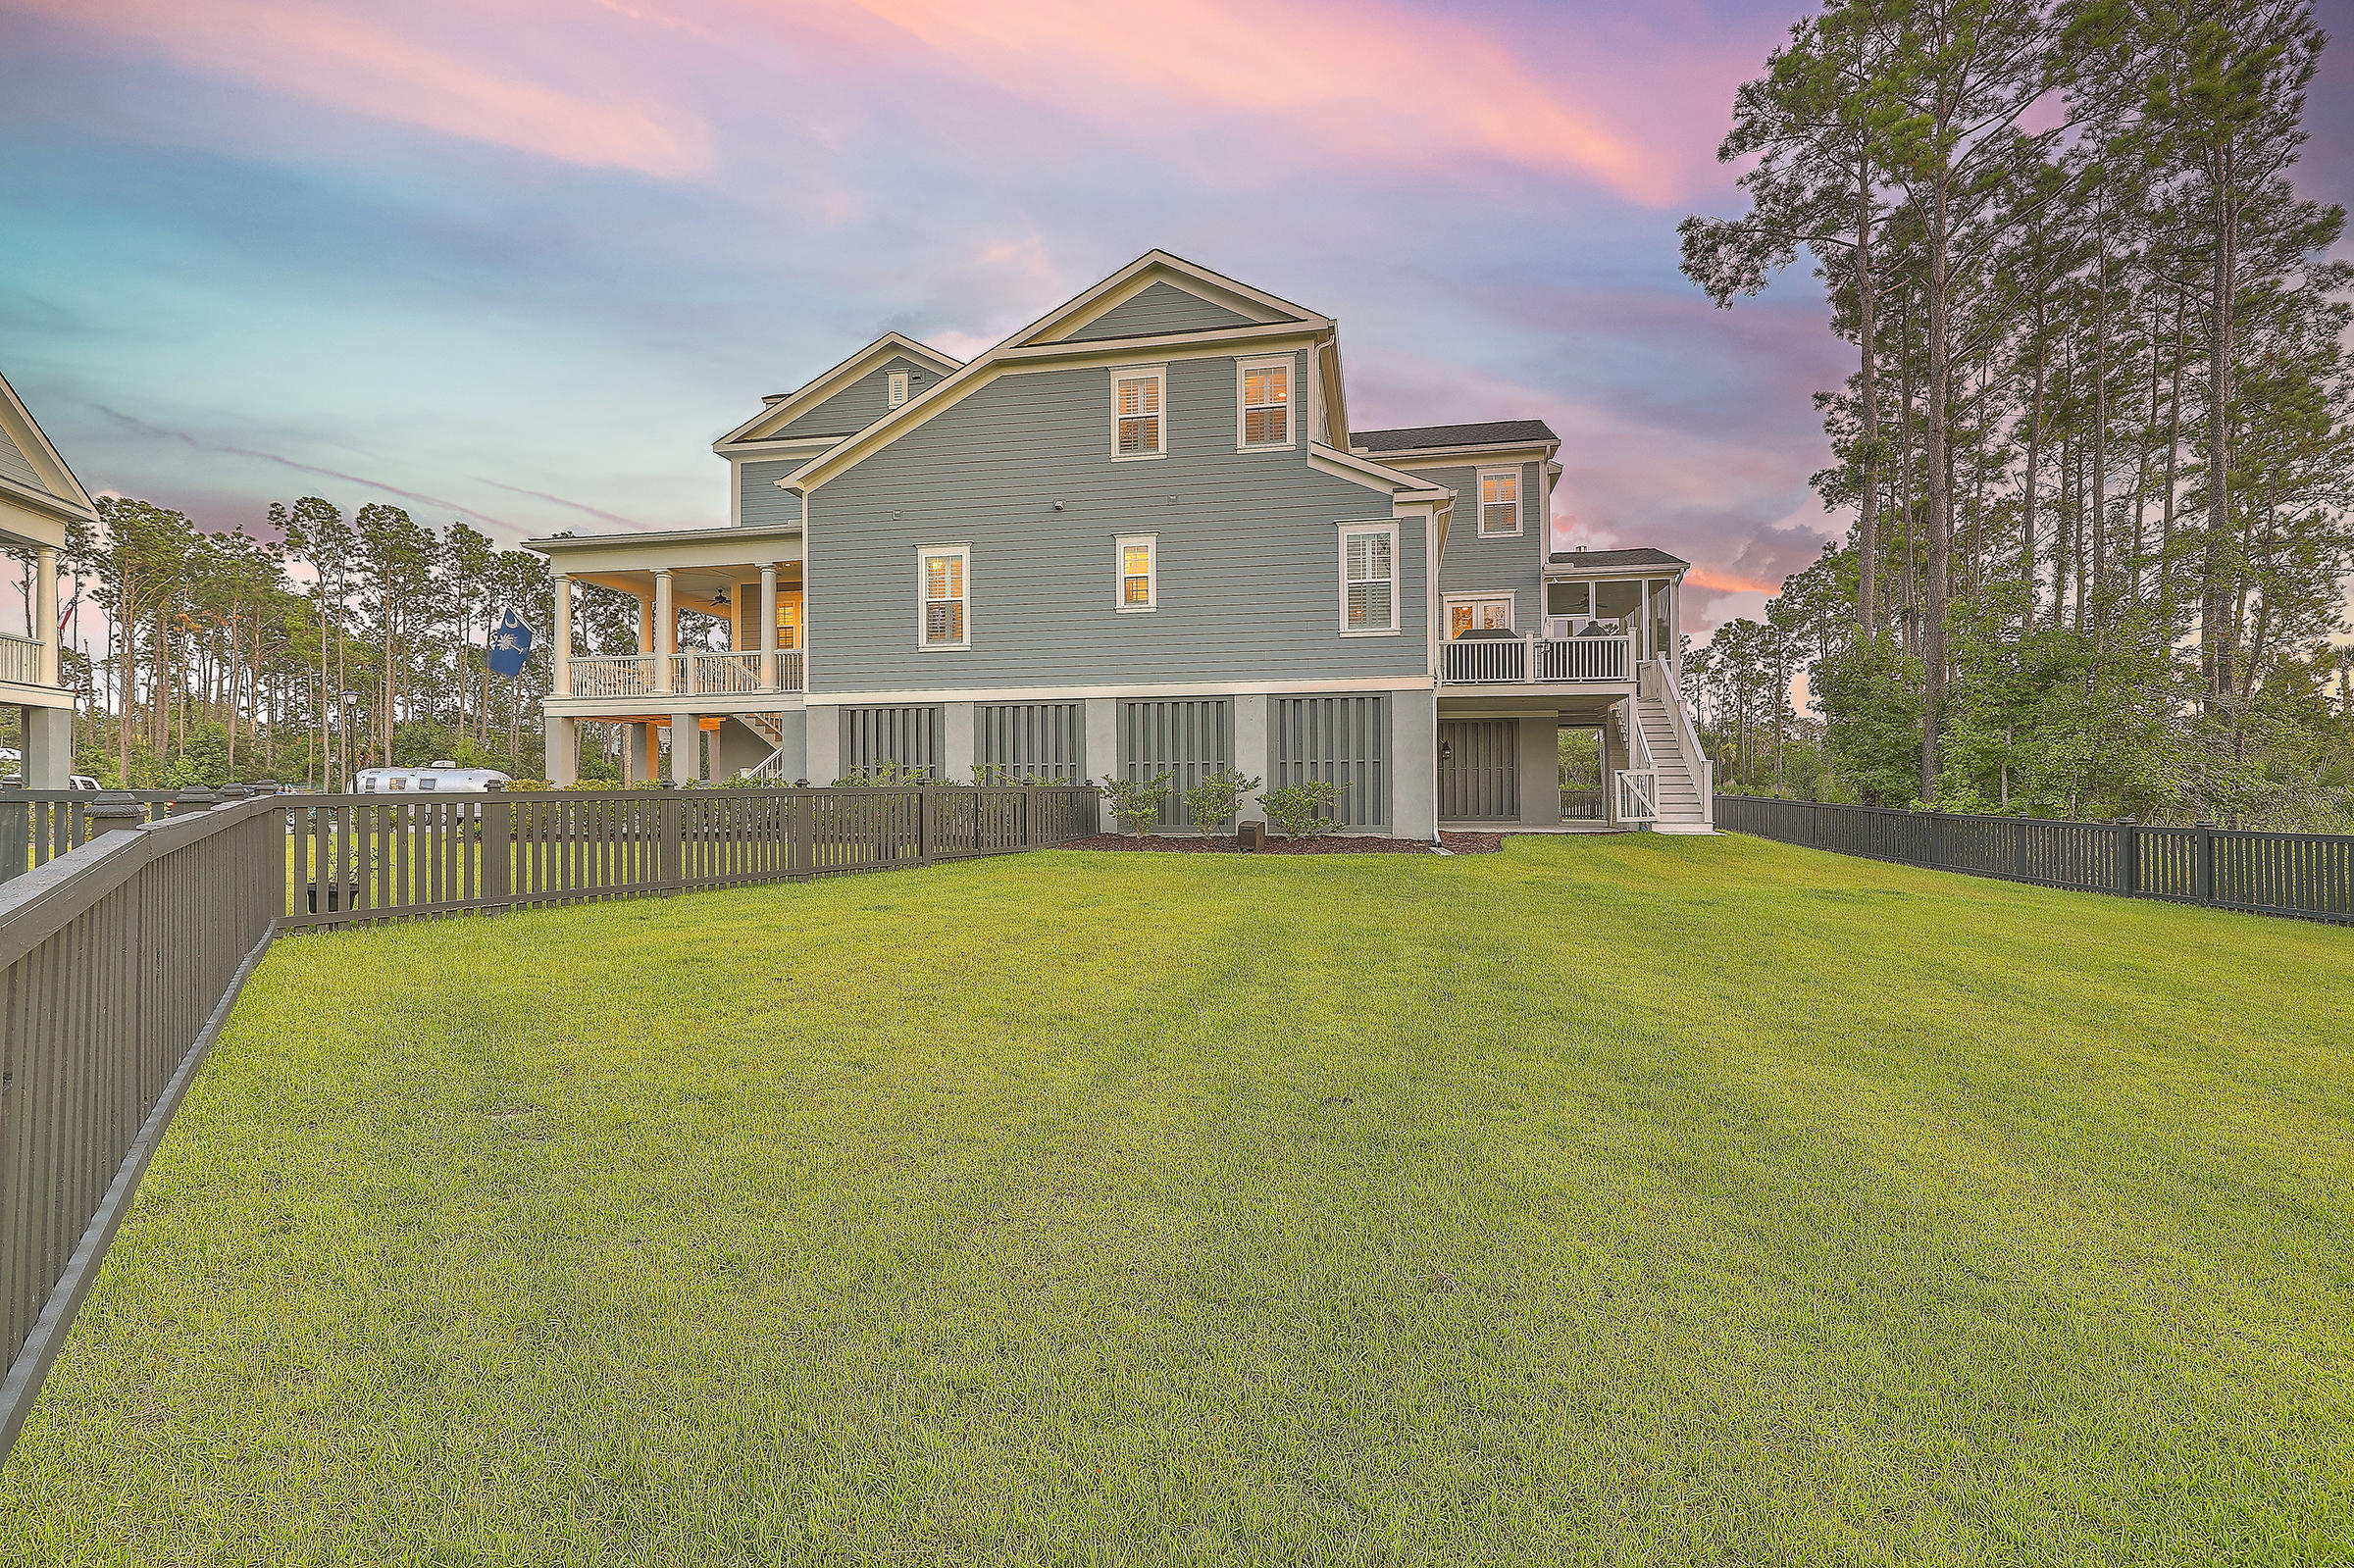 Stratton by the Sound Homes For Sale - 1204 Spottail, Mount Pleasant, SC - 35